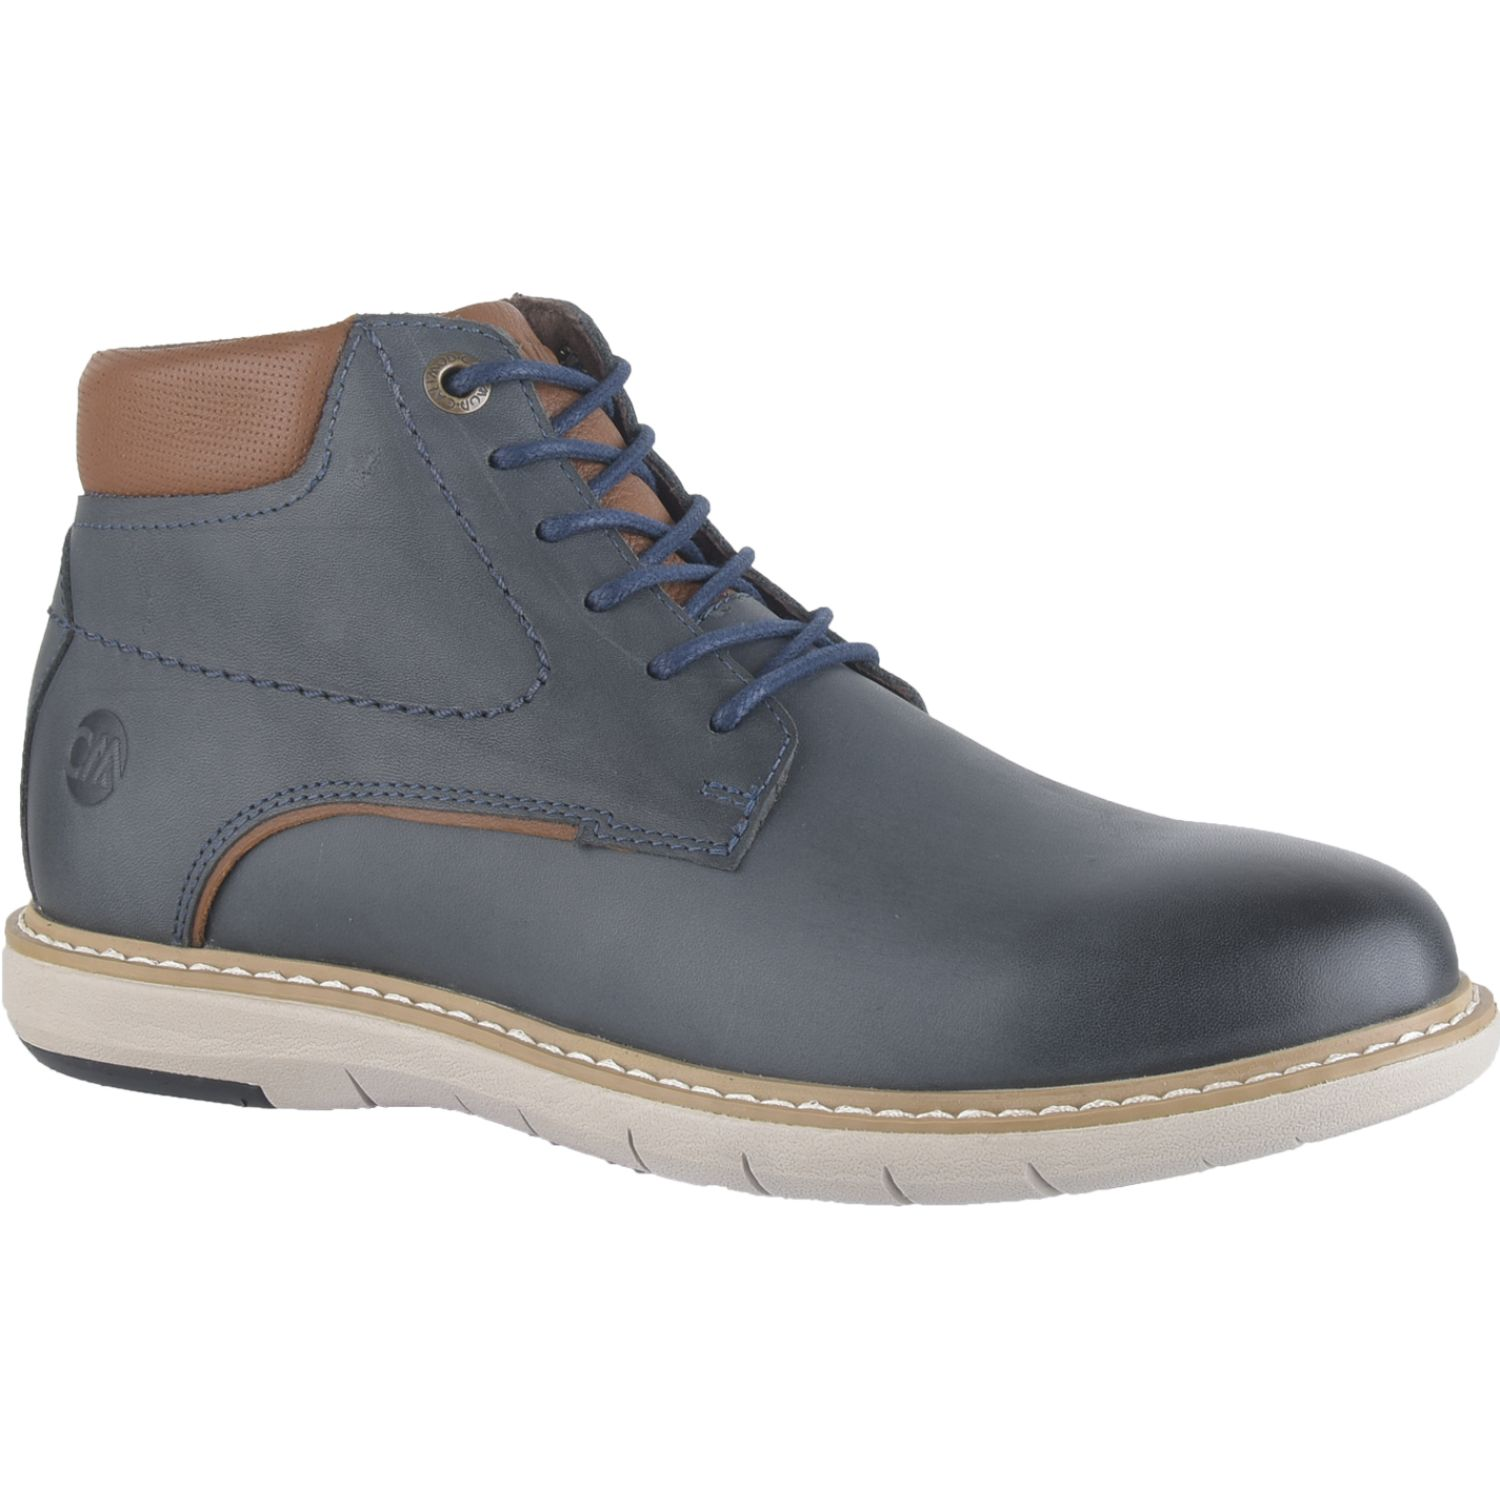 Calimod Zapato Casual Caballero Cez001to Azul Oxfords